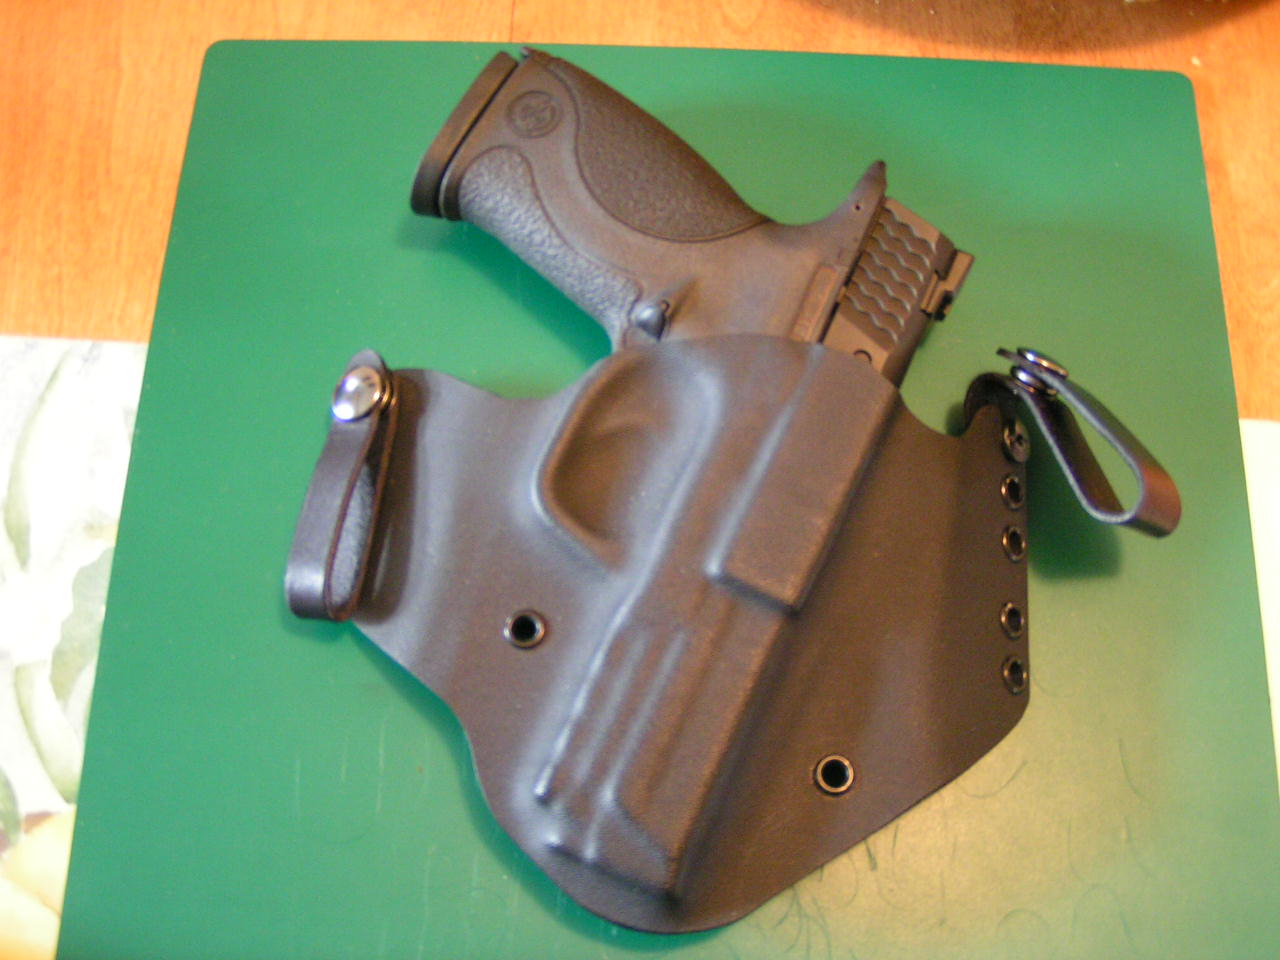 What is the best IWB for the Glock 21 Gen4 45acp pistol?